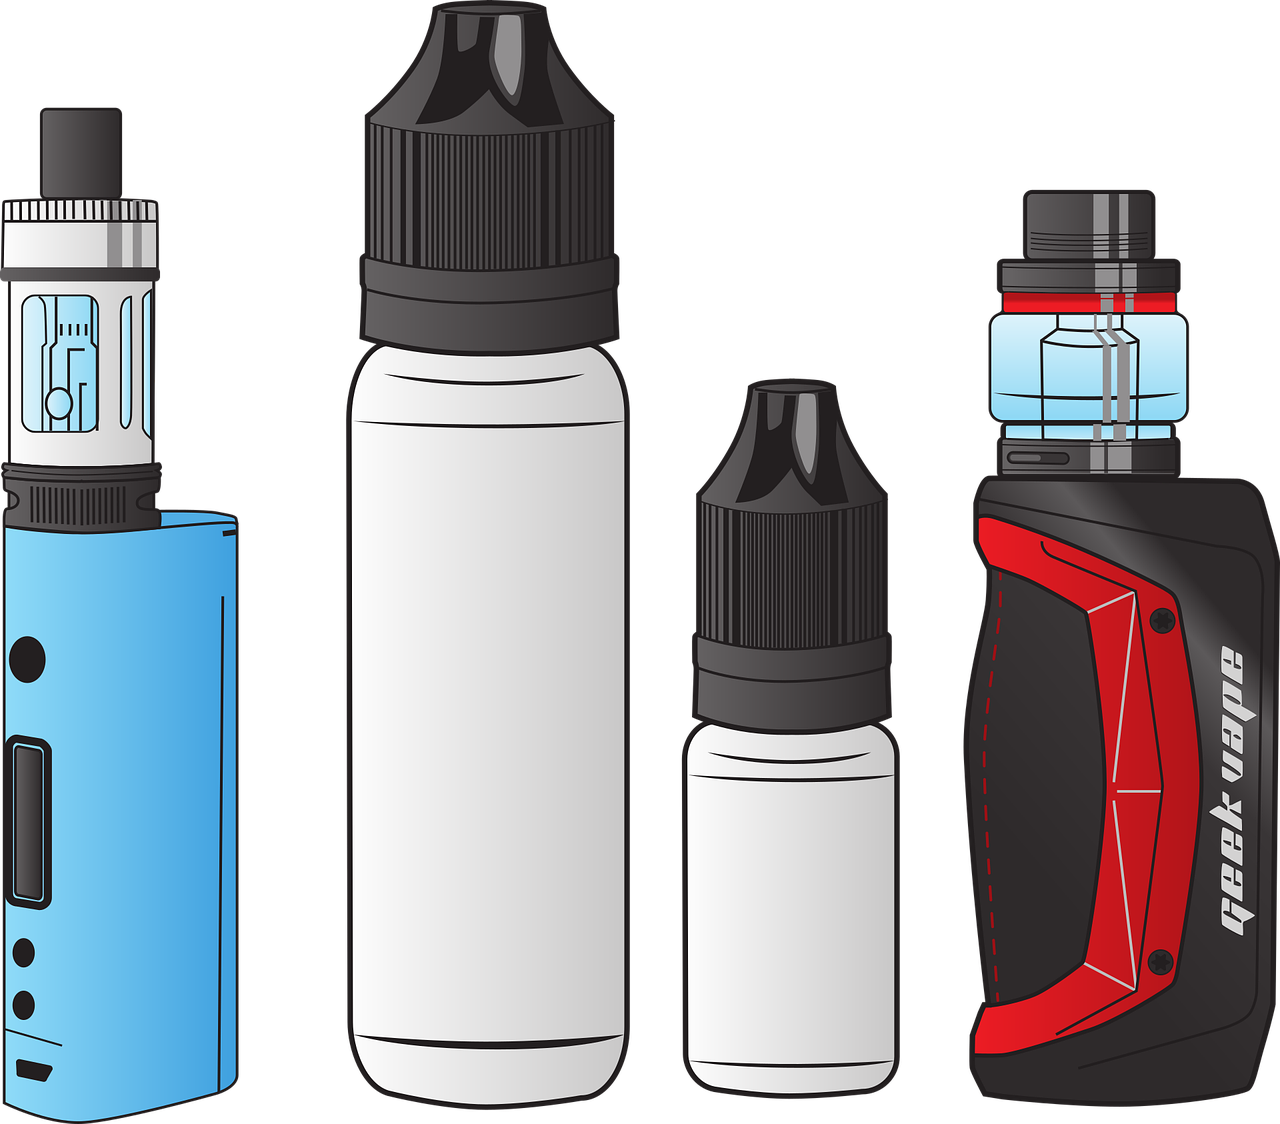 Featured image: Getting the Marketing Mix Right: A Commentary on NZ's Forthcoming Vaping Regulations